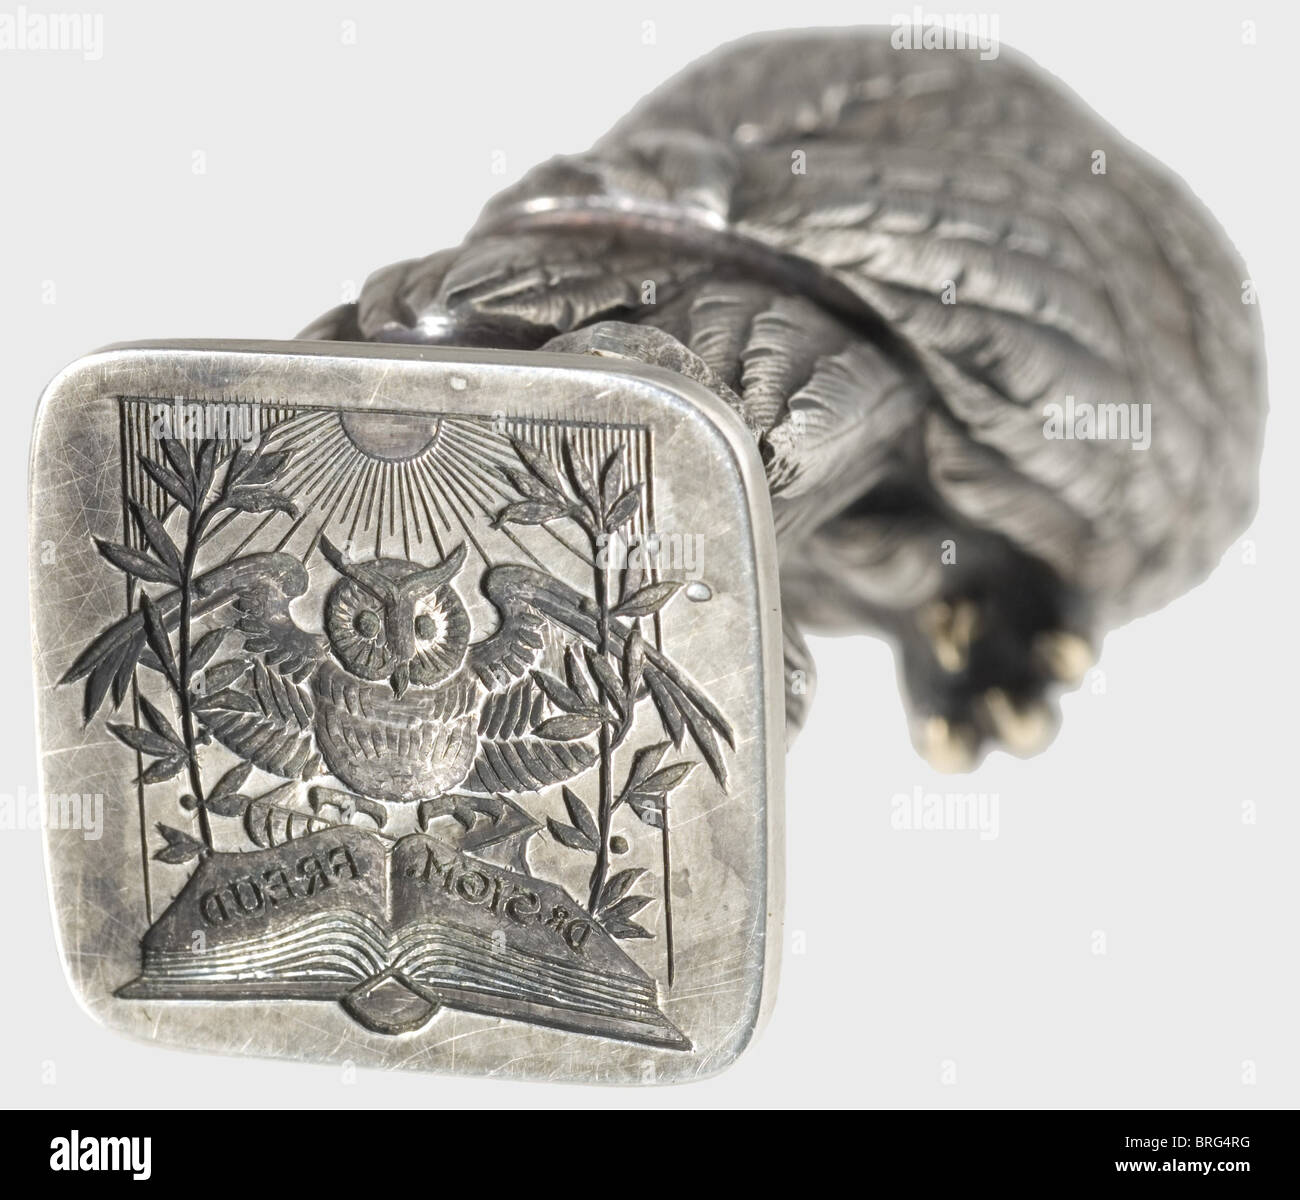 Dr. Sigmund Freud (1856 - 1939), a silver seal of the physician and founder of psychoanalysis The handle in the - Stock Image